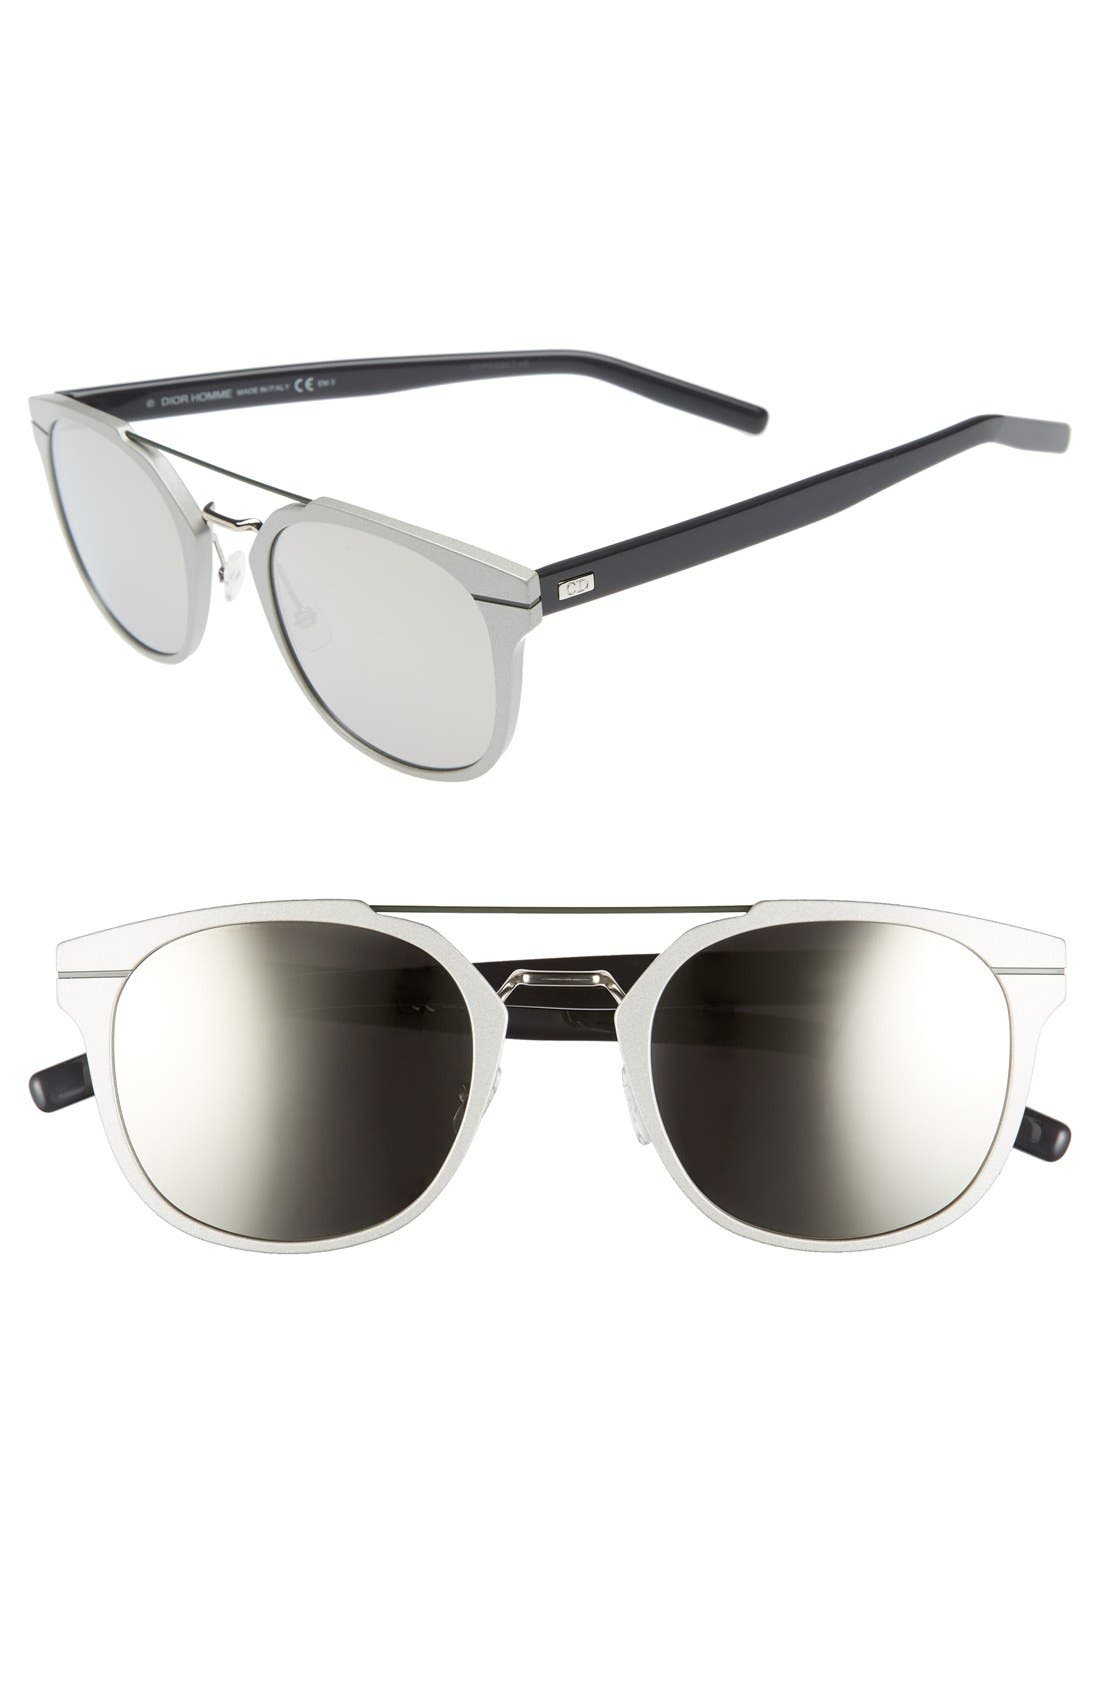 Alternate Image 1 Selected - Dior Homme 'AL 13.5S' 52mm Sunglasses